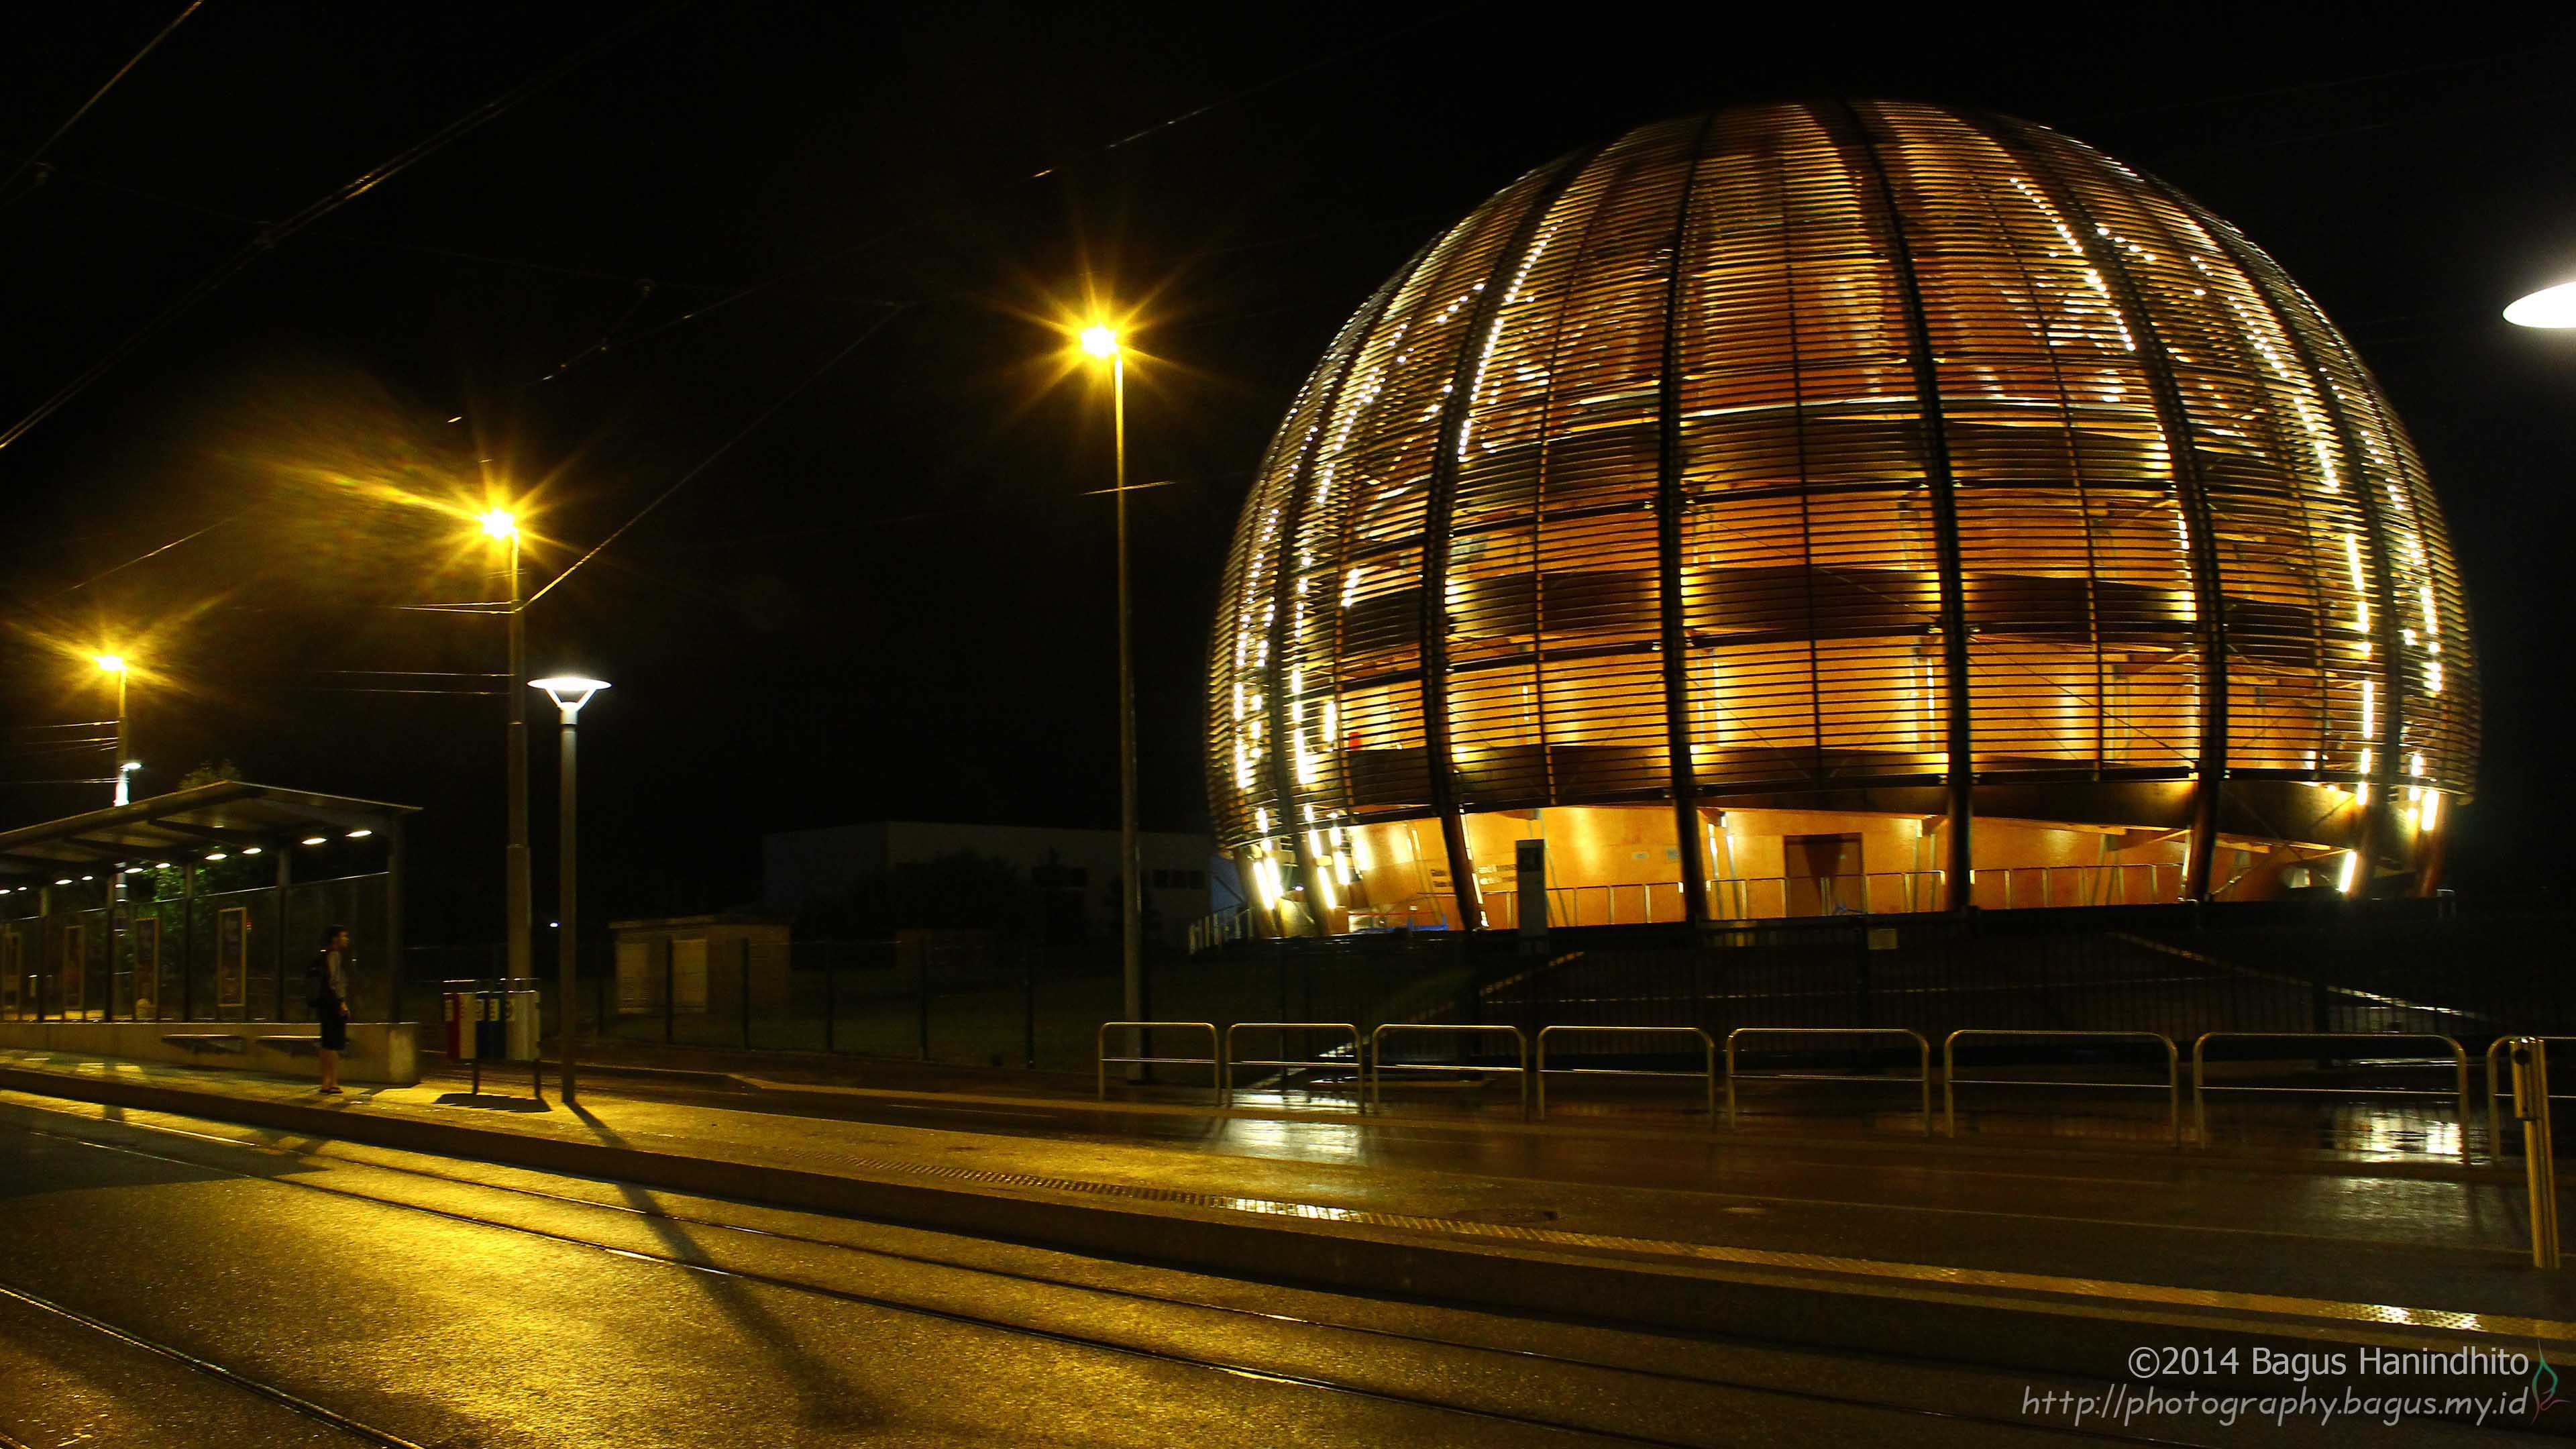 The famous Globe of Science and Innovation during night. It is a landmark (and also museum) in front of CERN Meyrin Site that will welcome everyone who pays a visit to CERN.